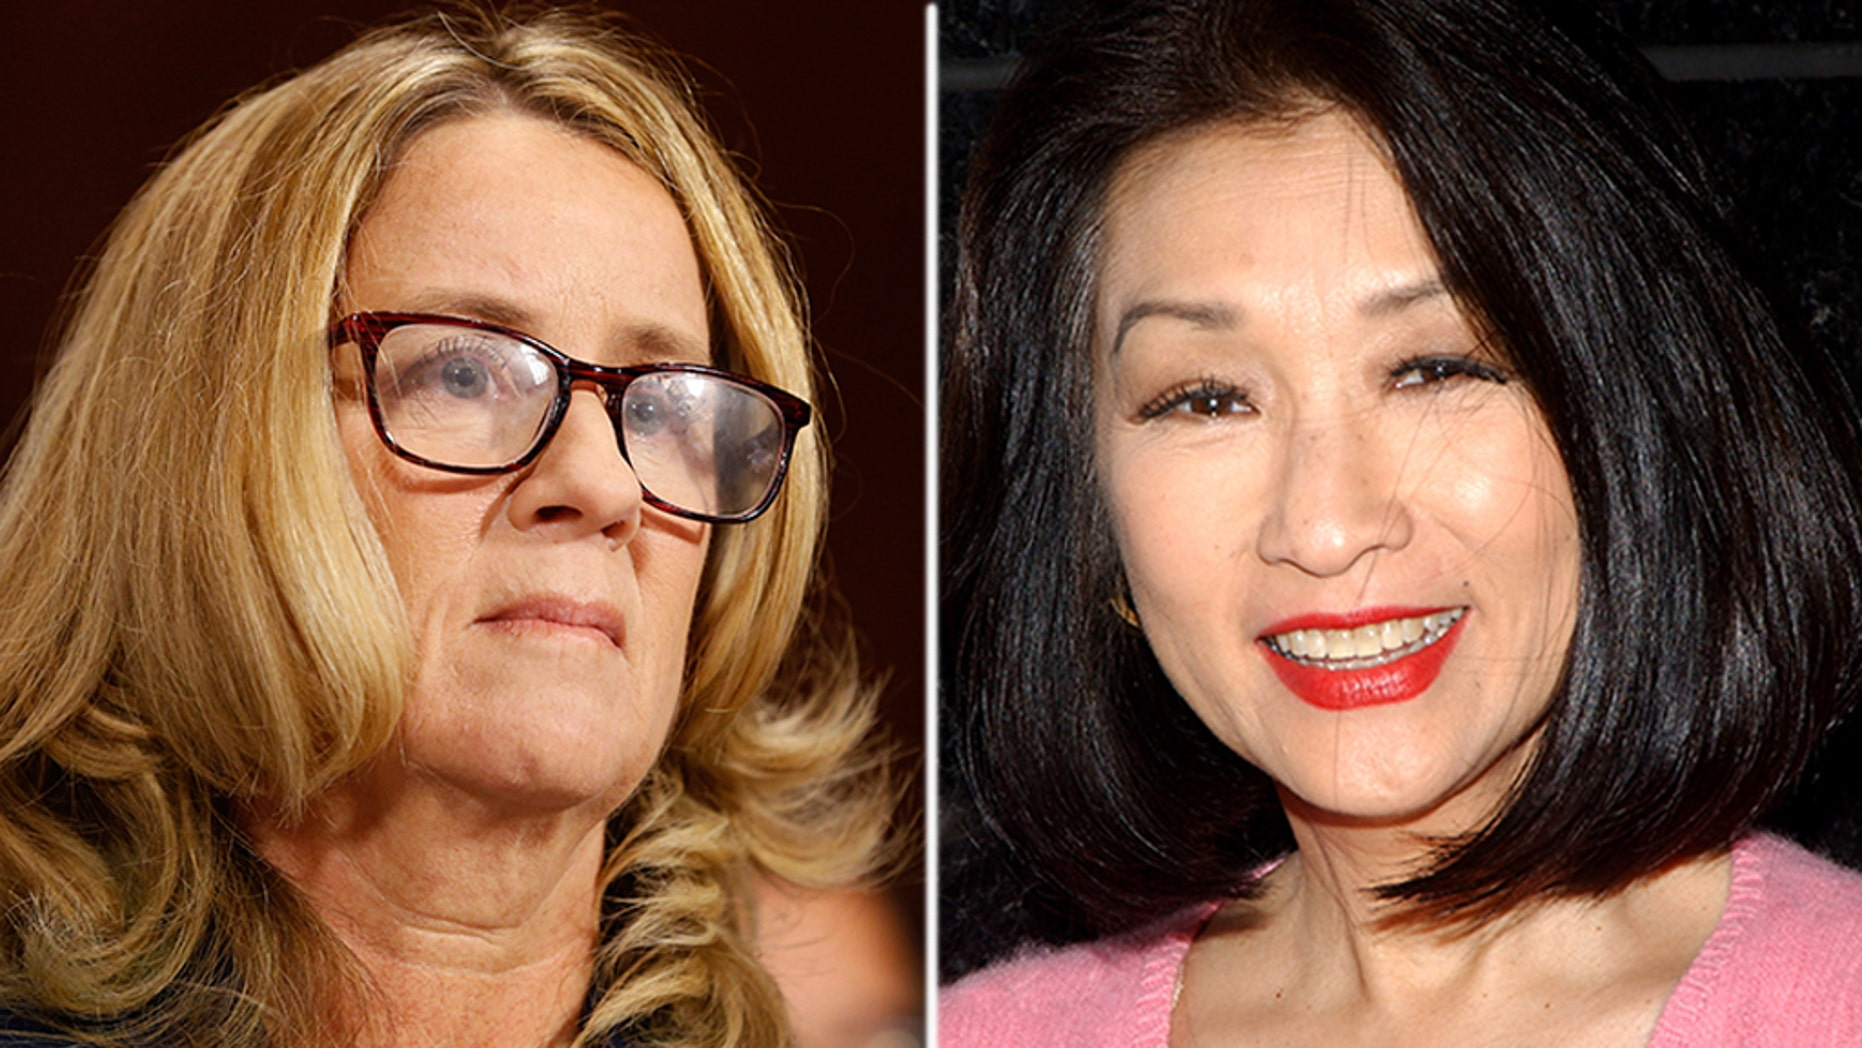 Veteran journalist Connie Chung on Wednesday revealed her own decades-old sexual assault allegation in an opinion piece addressed directly to Christine Blasey Ford, who has leveled accusations at Supreme Court nominee Brett Kavanaugh.